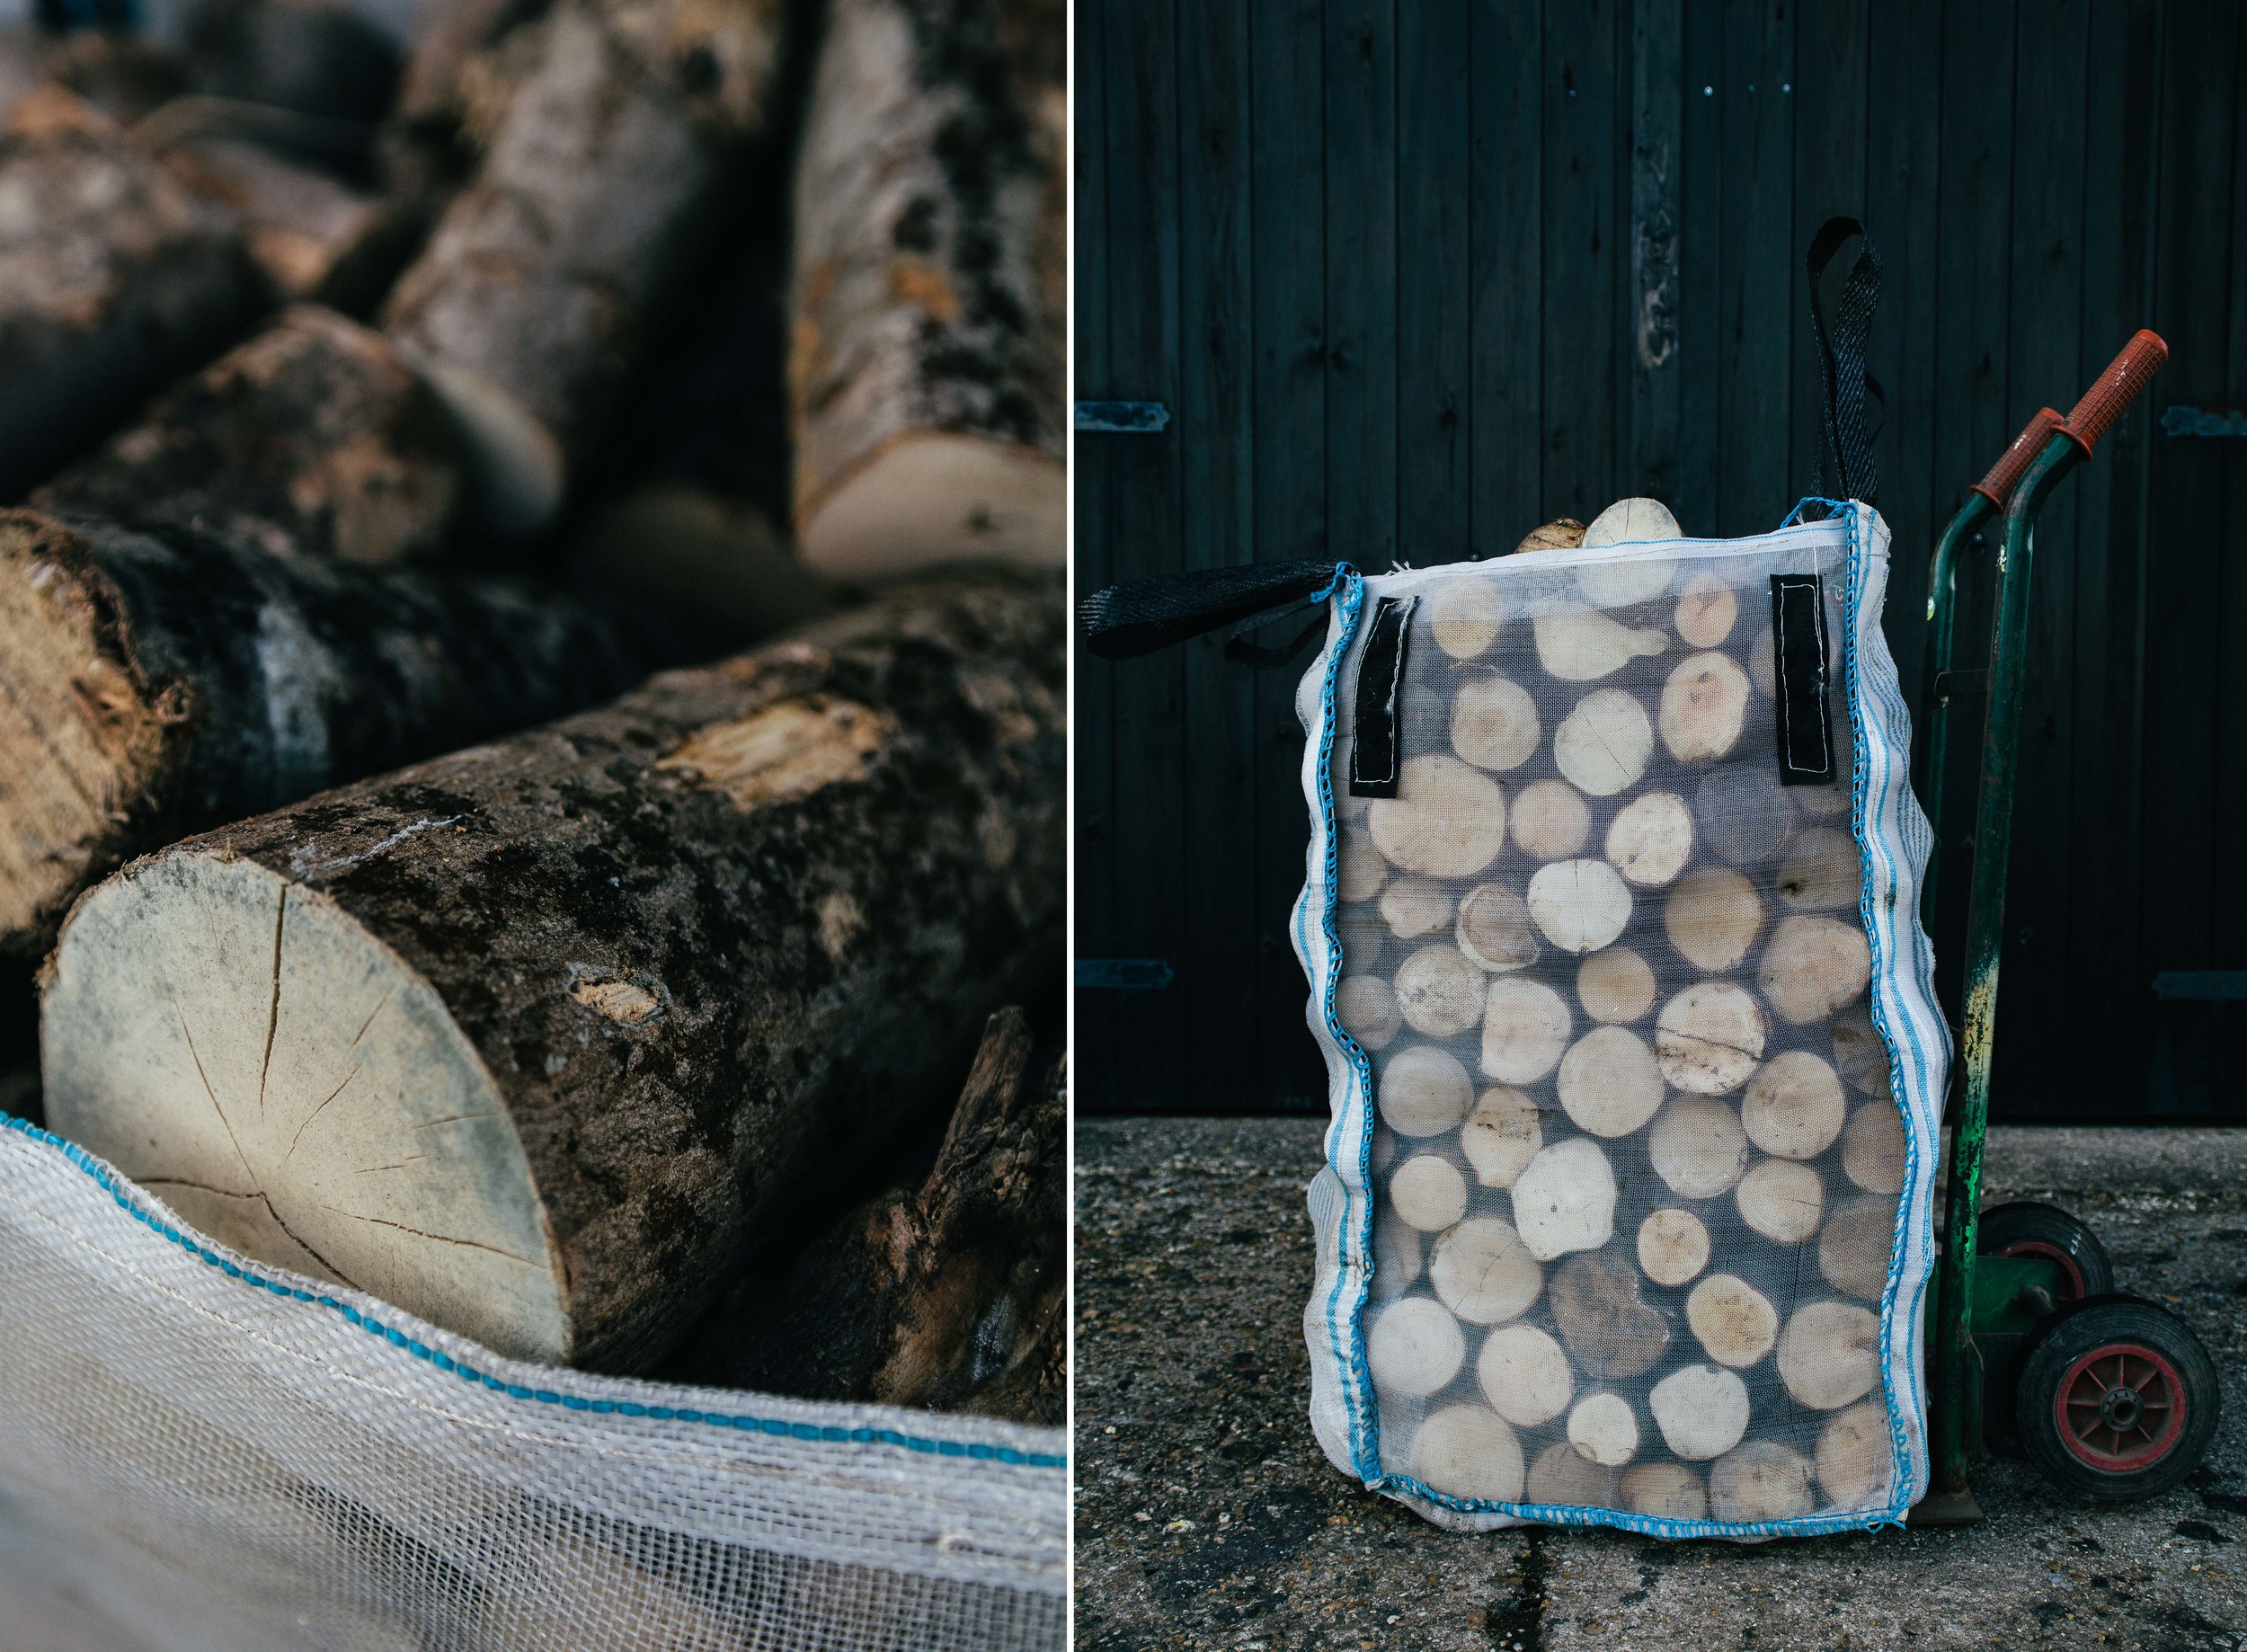 Small bags of firewood